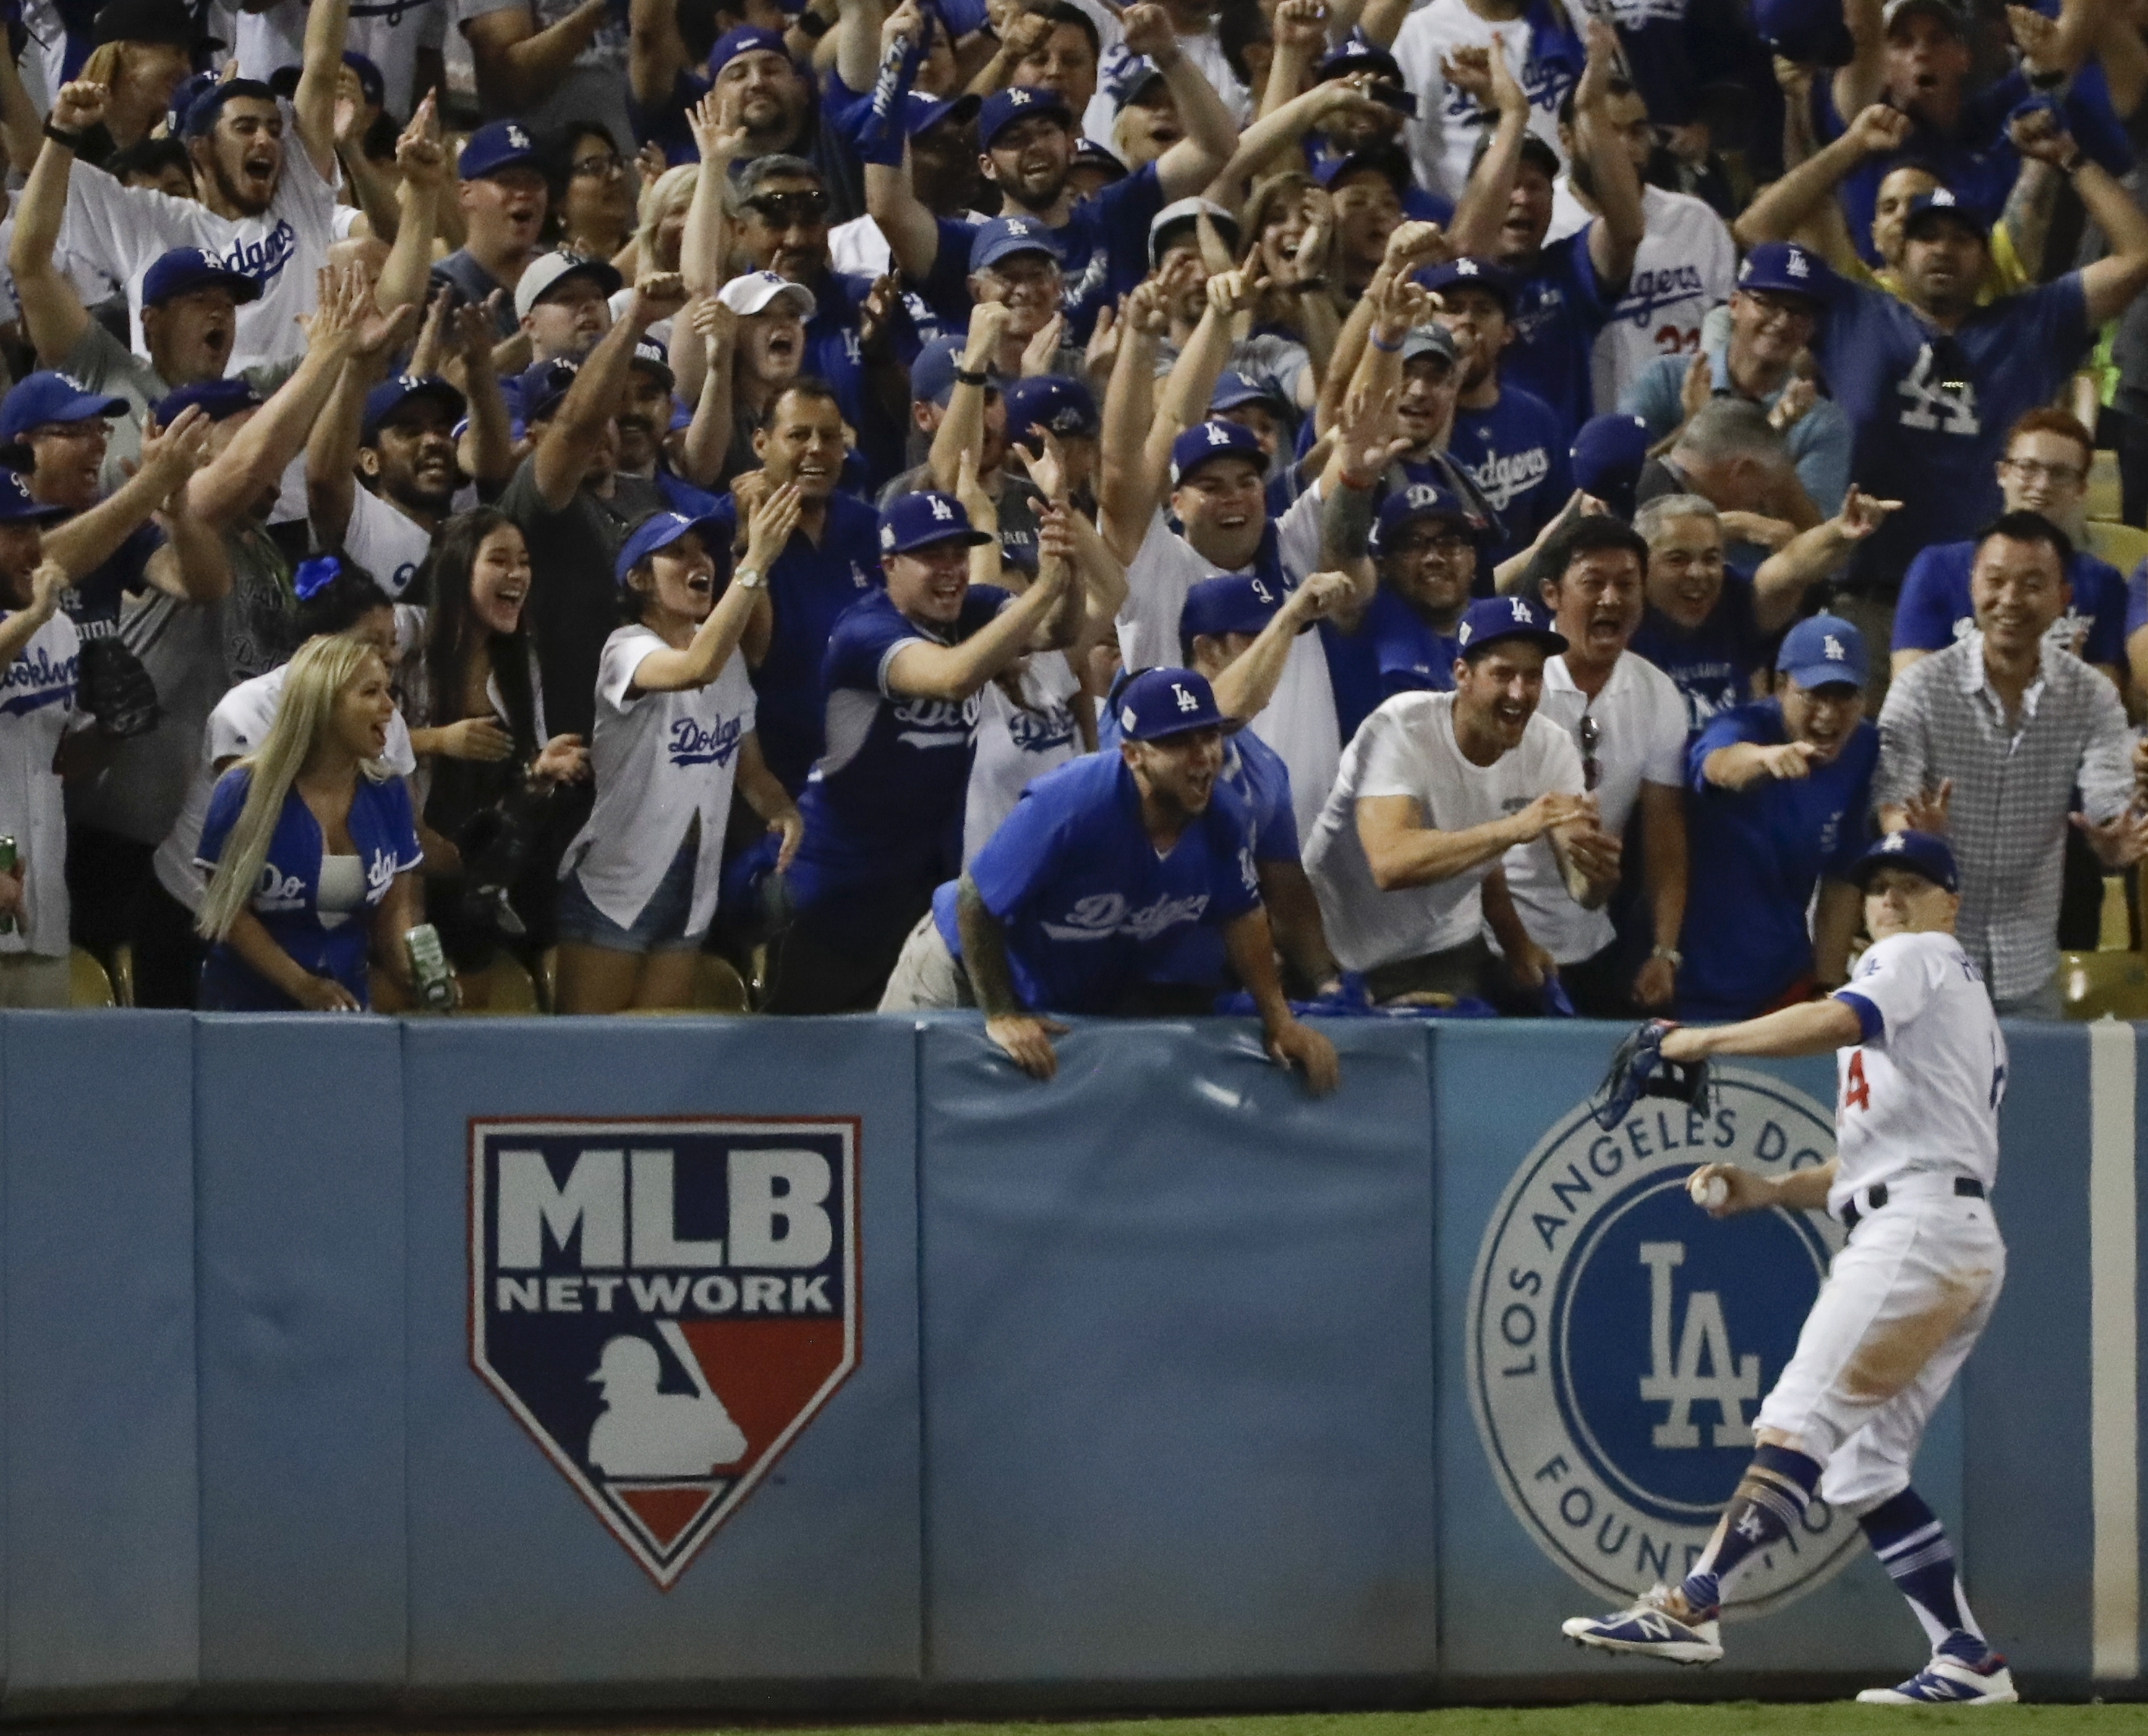 <div class='meta'><div class='origin-logo' data-origin='AP'></div><span class='caption-text' data-credit='(AP Photo/David J. Phillip)'>Fans cheer as Los Angeles Dodgers' Enrique Hernandez catches a long fly ball hit by Houston Astros' Josh Reddick during the eighth inning of Game 1 of baseball's World Series.</span></div>